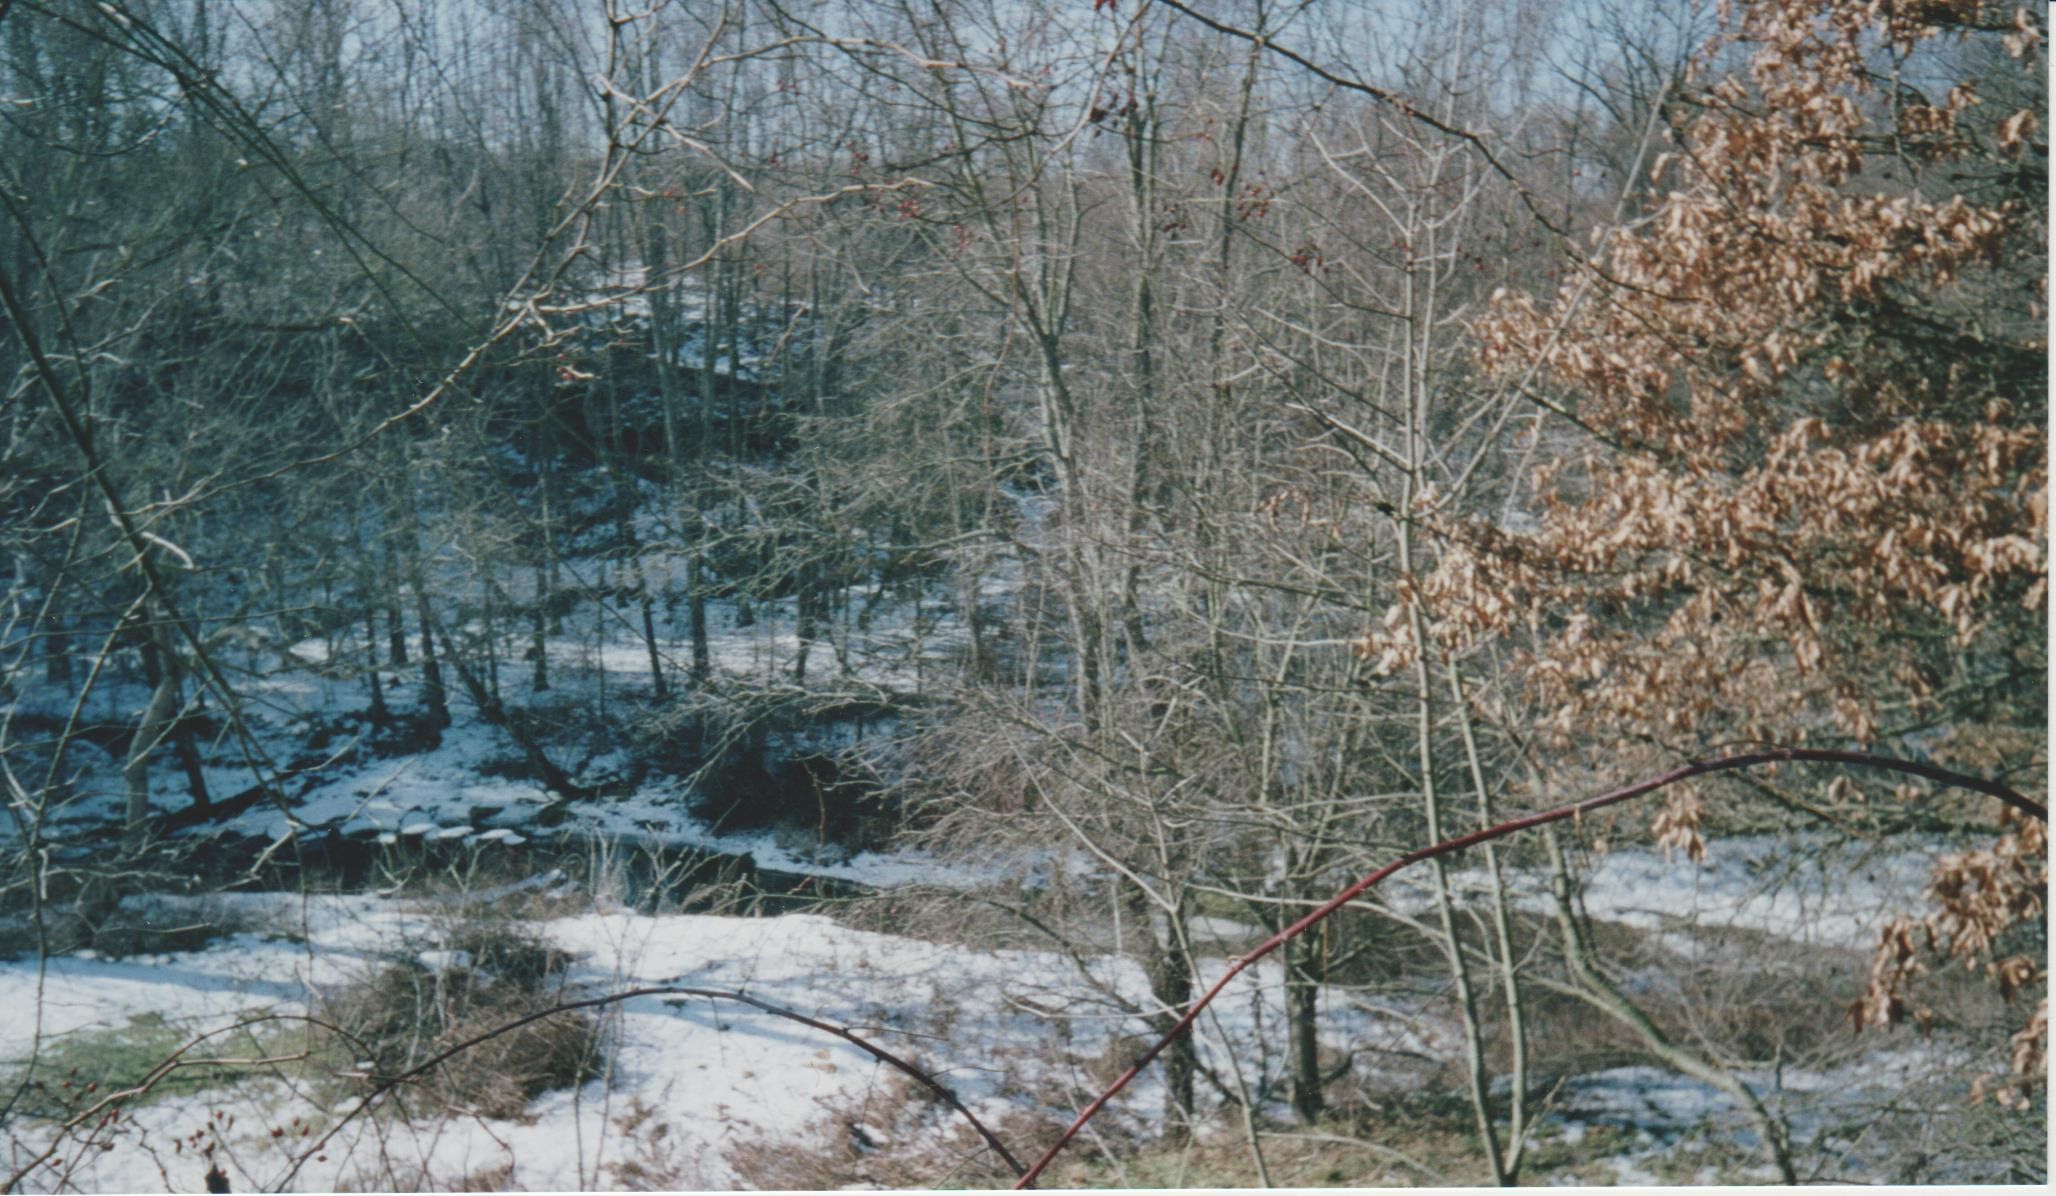 creek-and-woods-in-winter